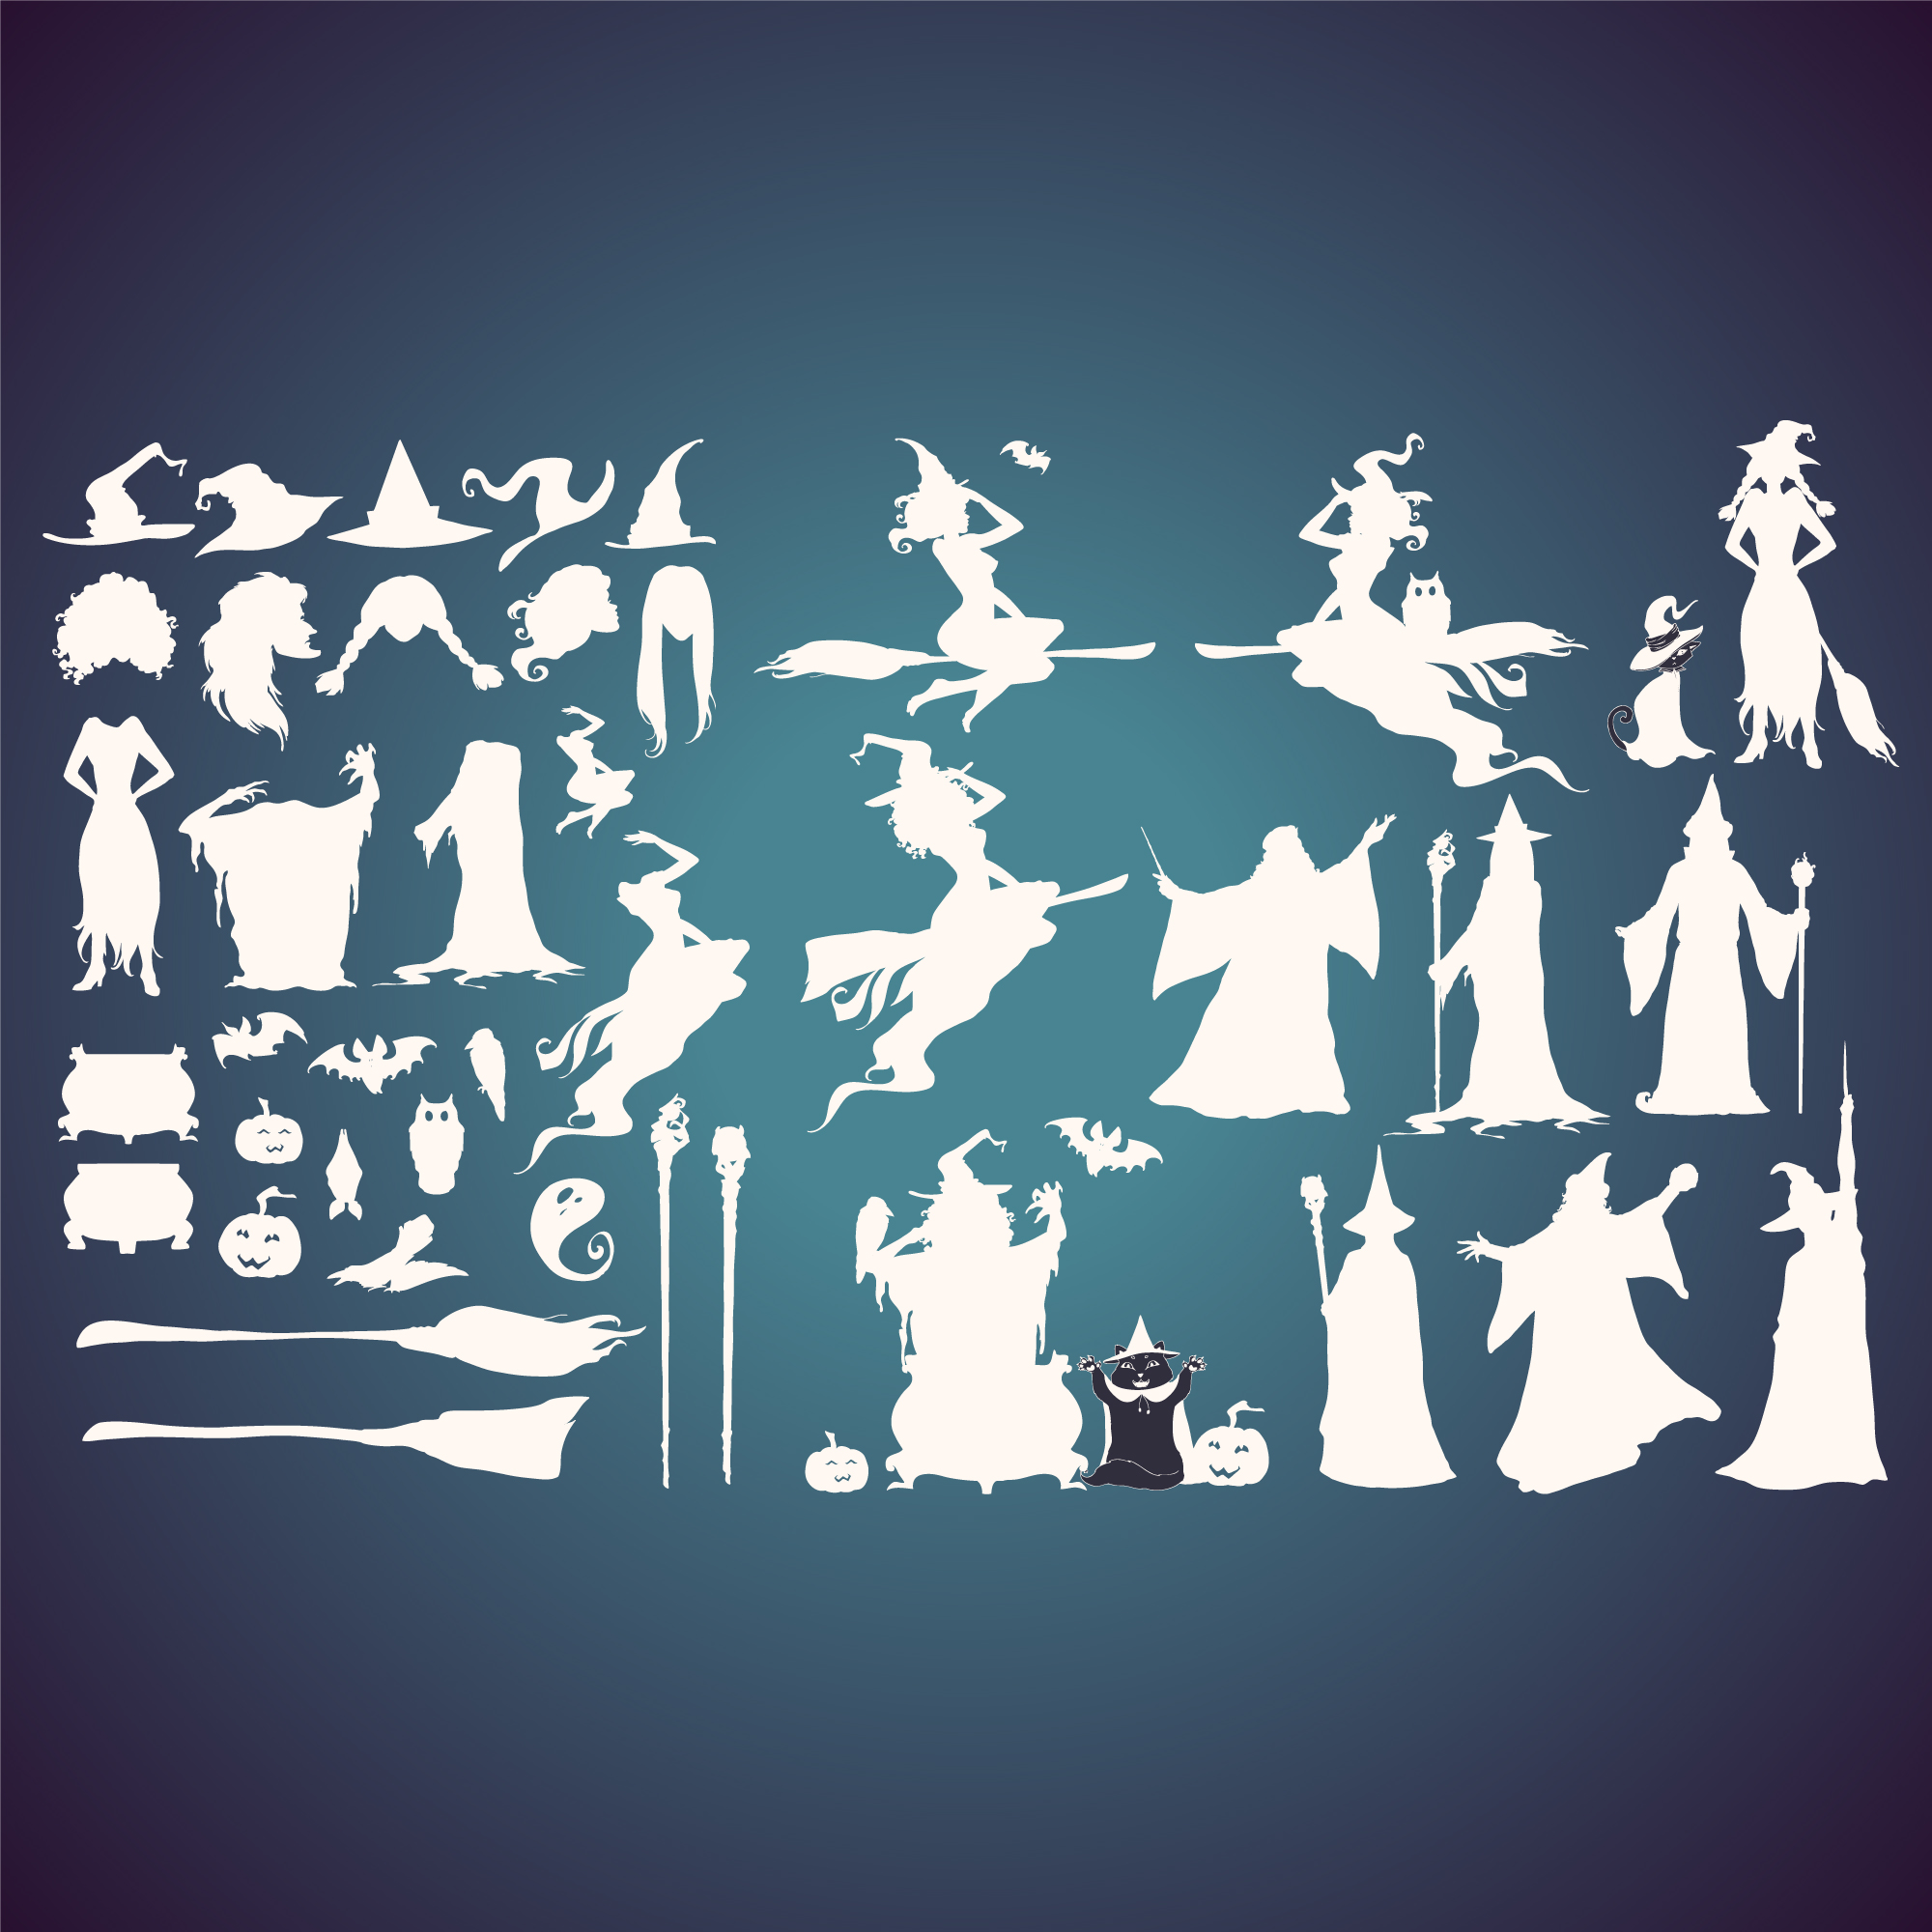 Witches silhouettes collection